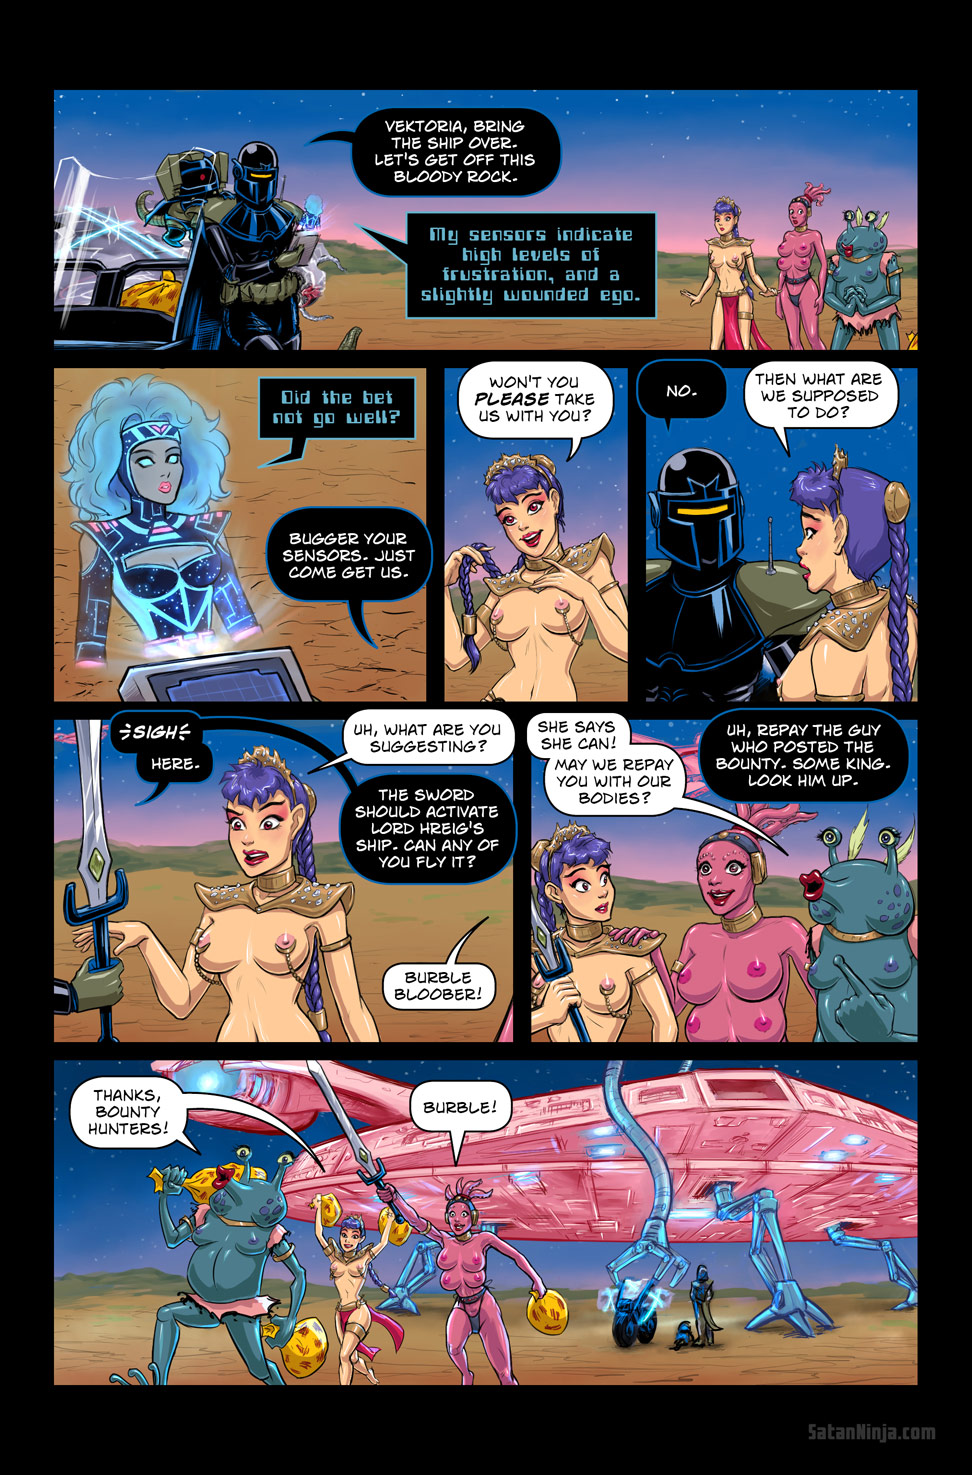 Issue 2, Page 20 - Vektoria